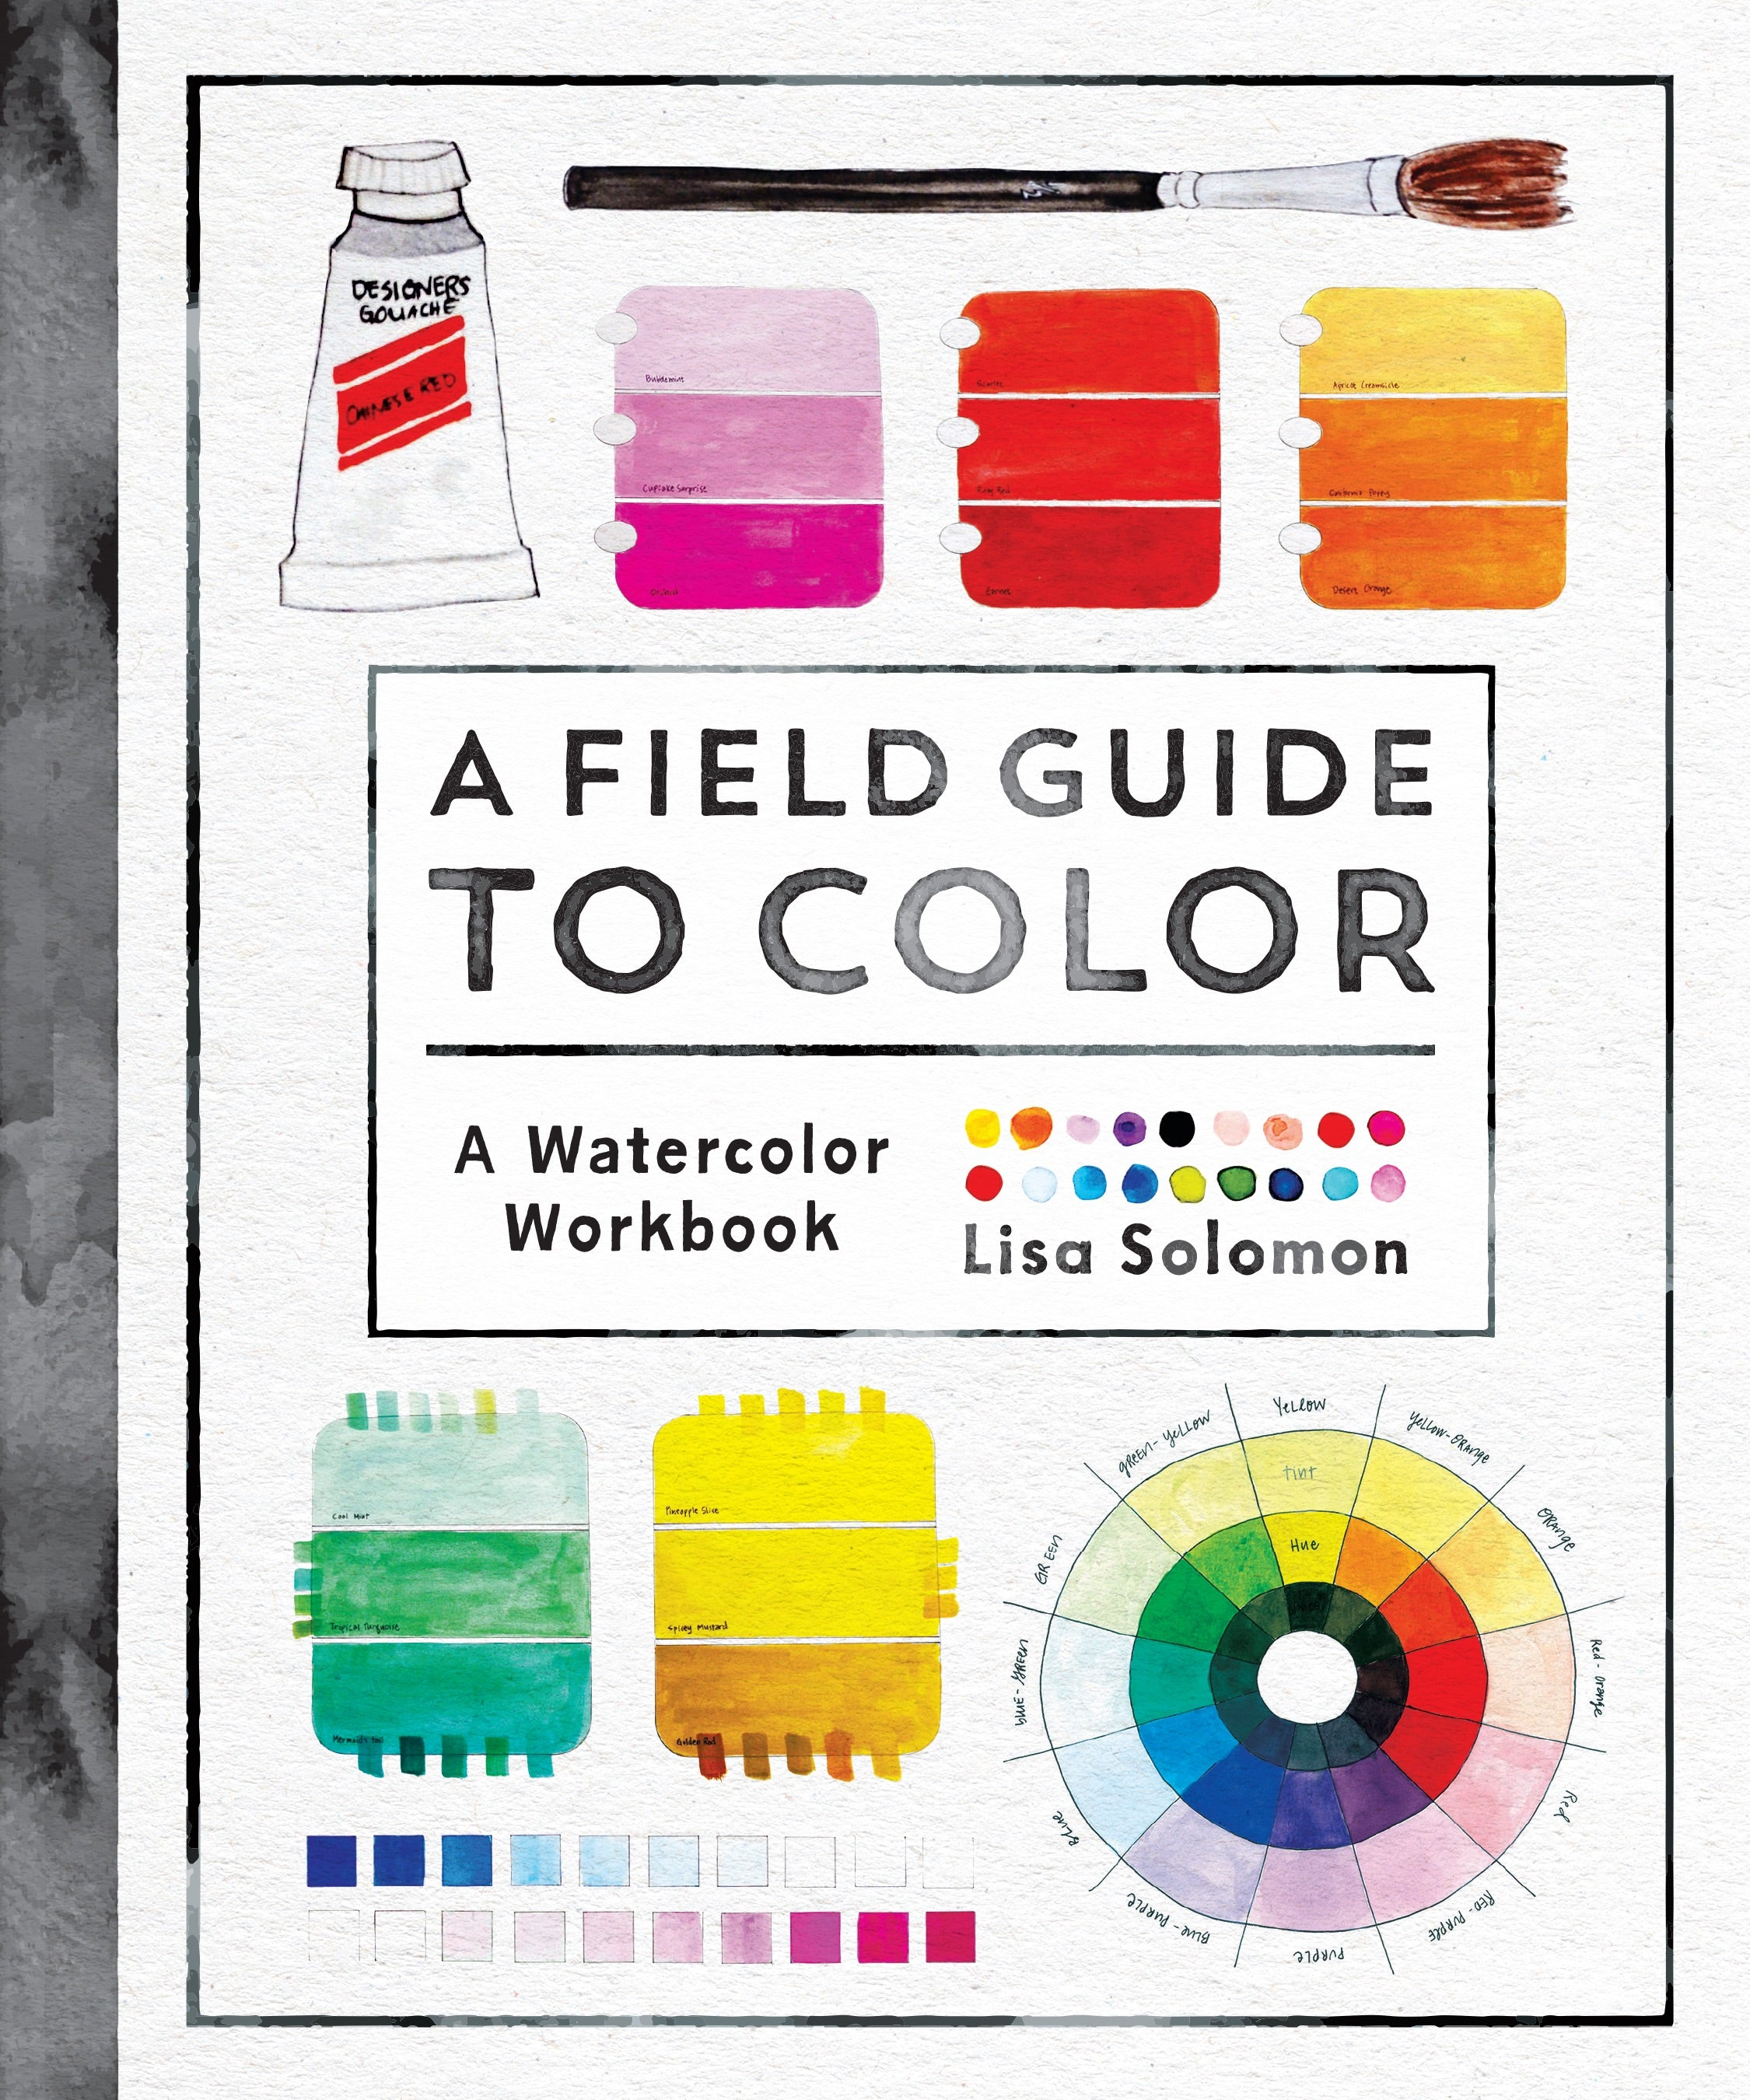 A Field Guide to Color, A Watercolor Workbook